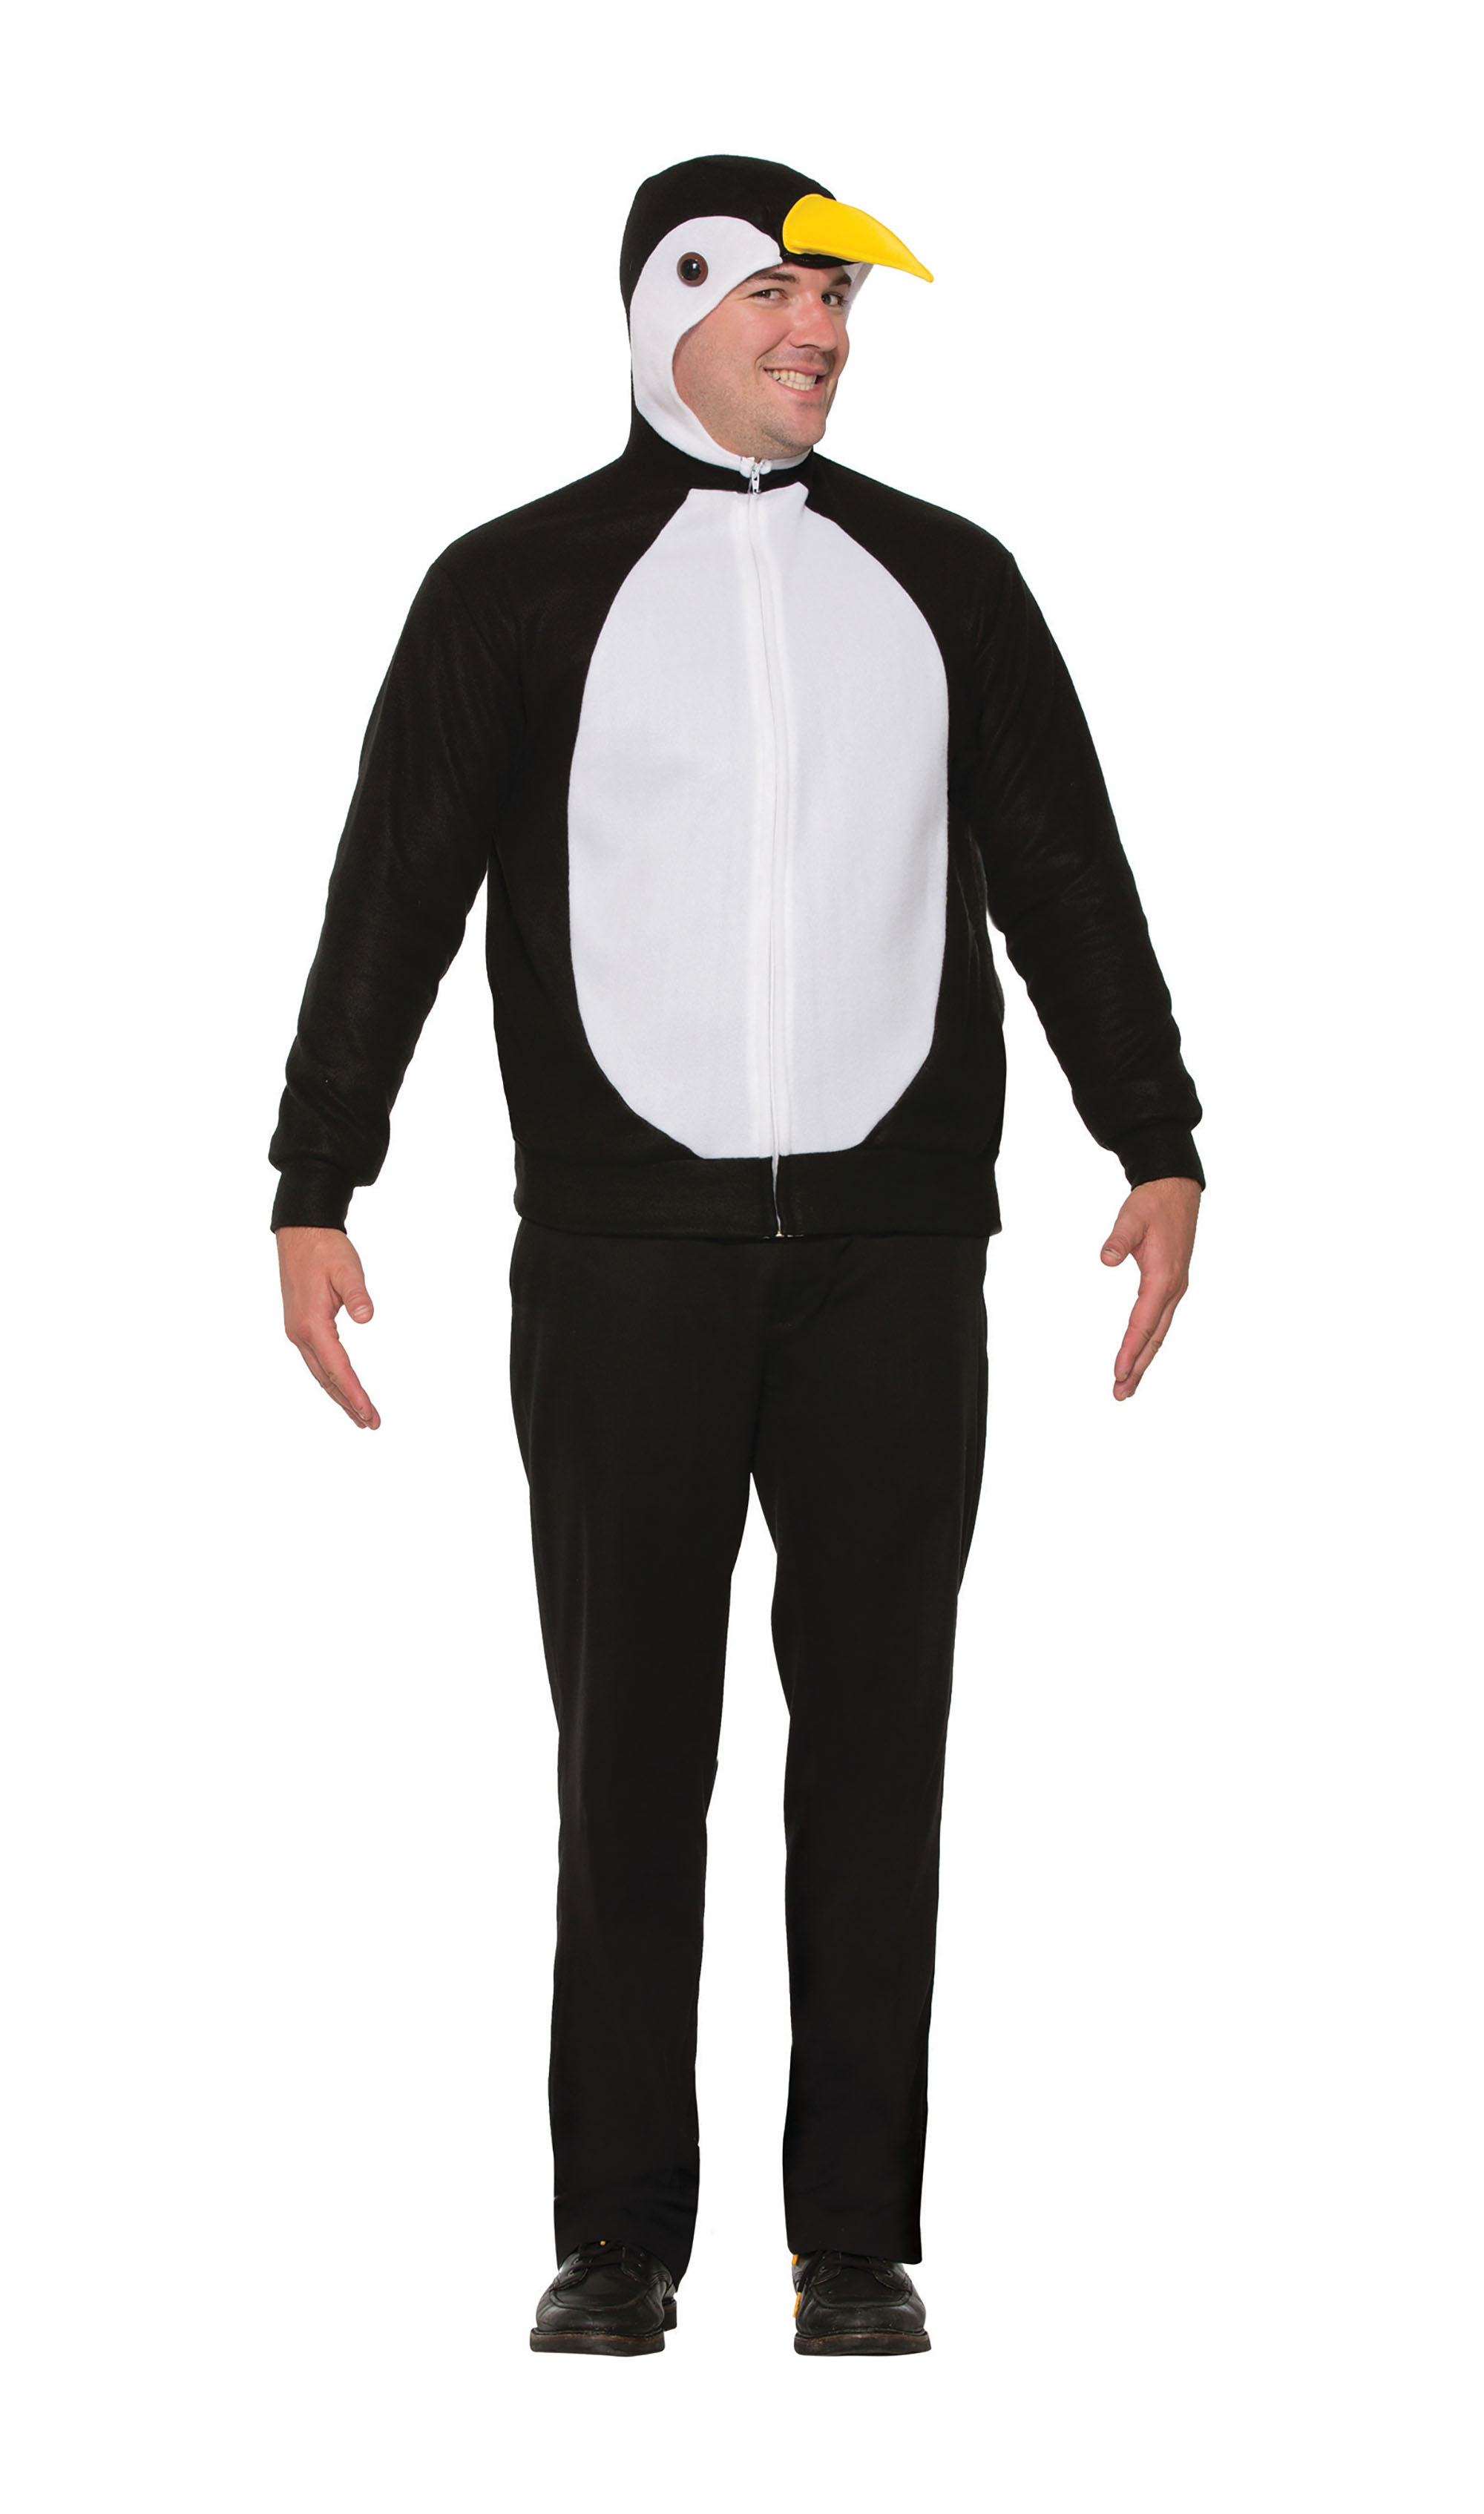 Penguin Jumpsuit Unisex Christmas Fancy Dress Costume Outfit Adult One Size